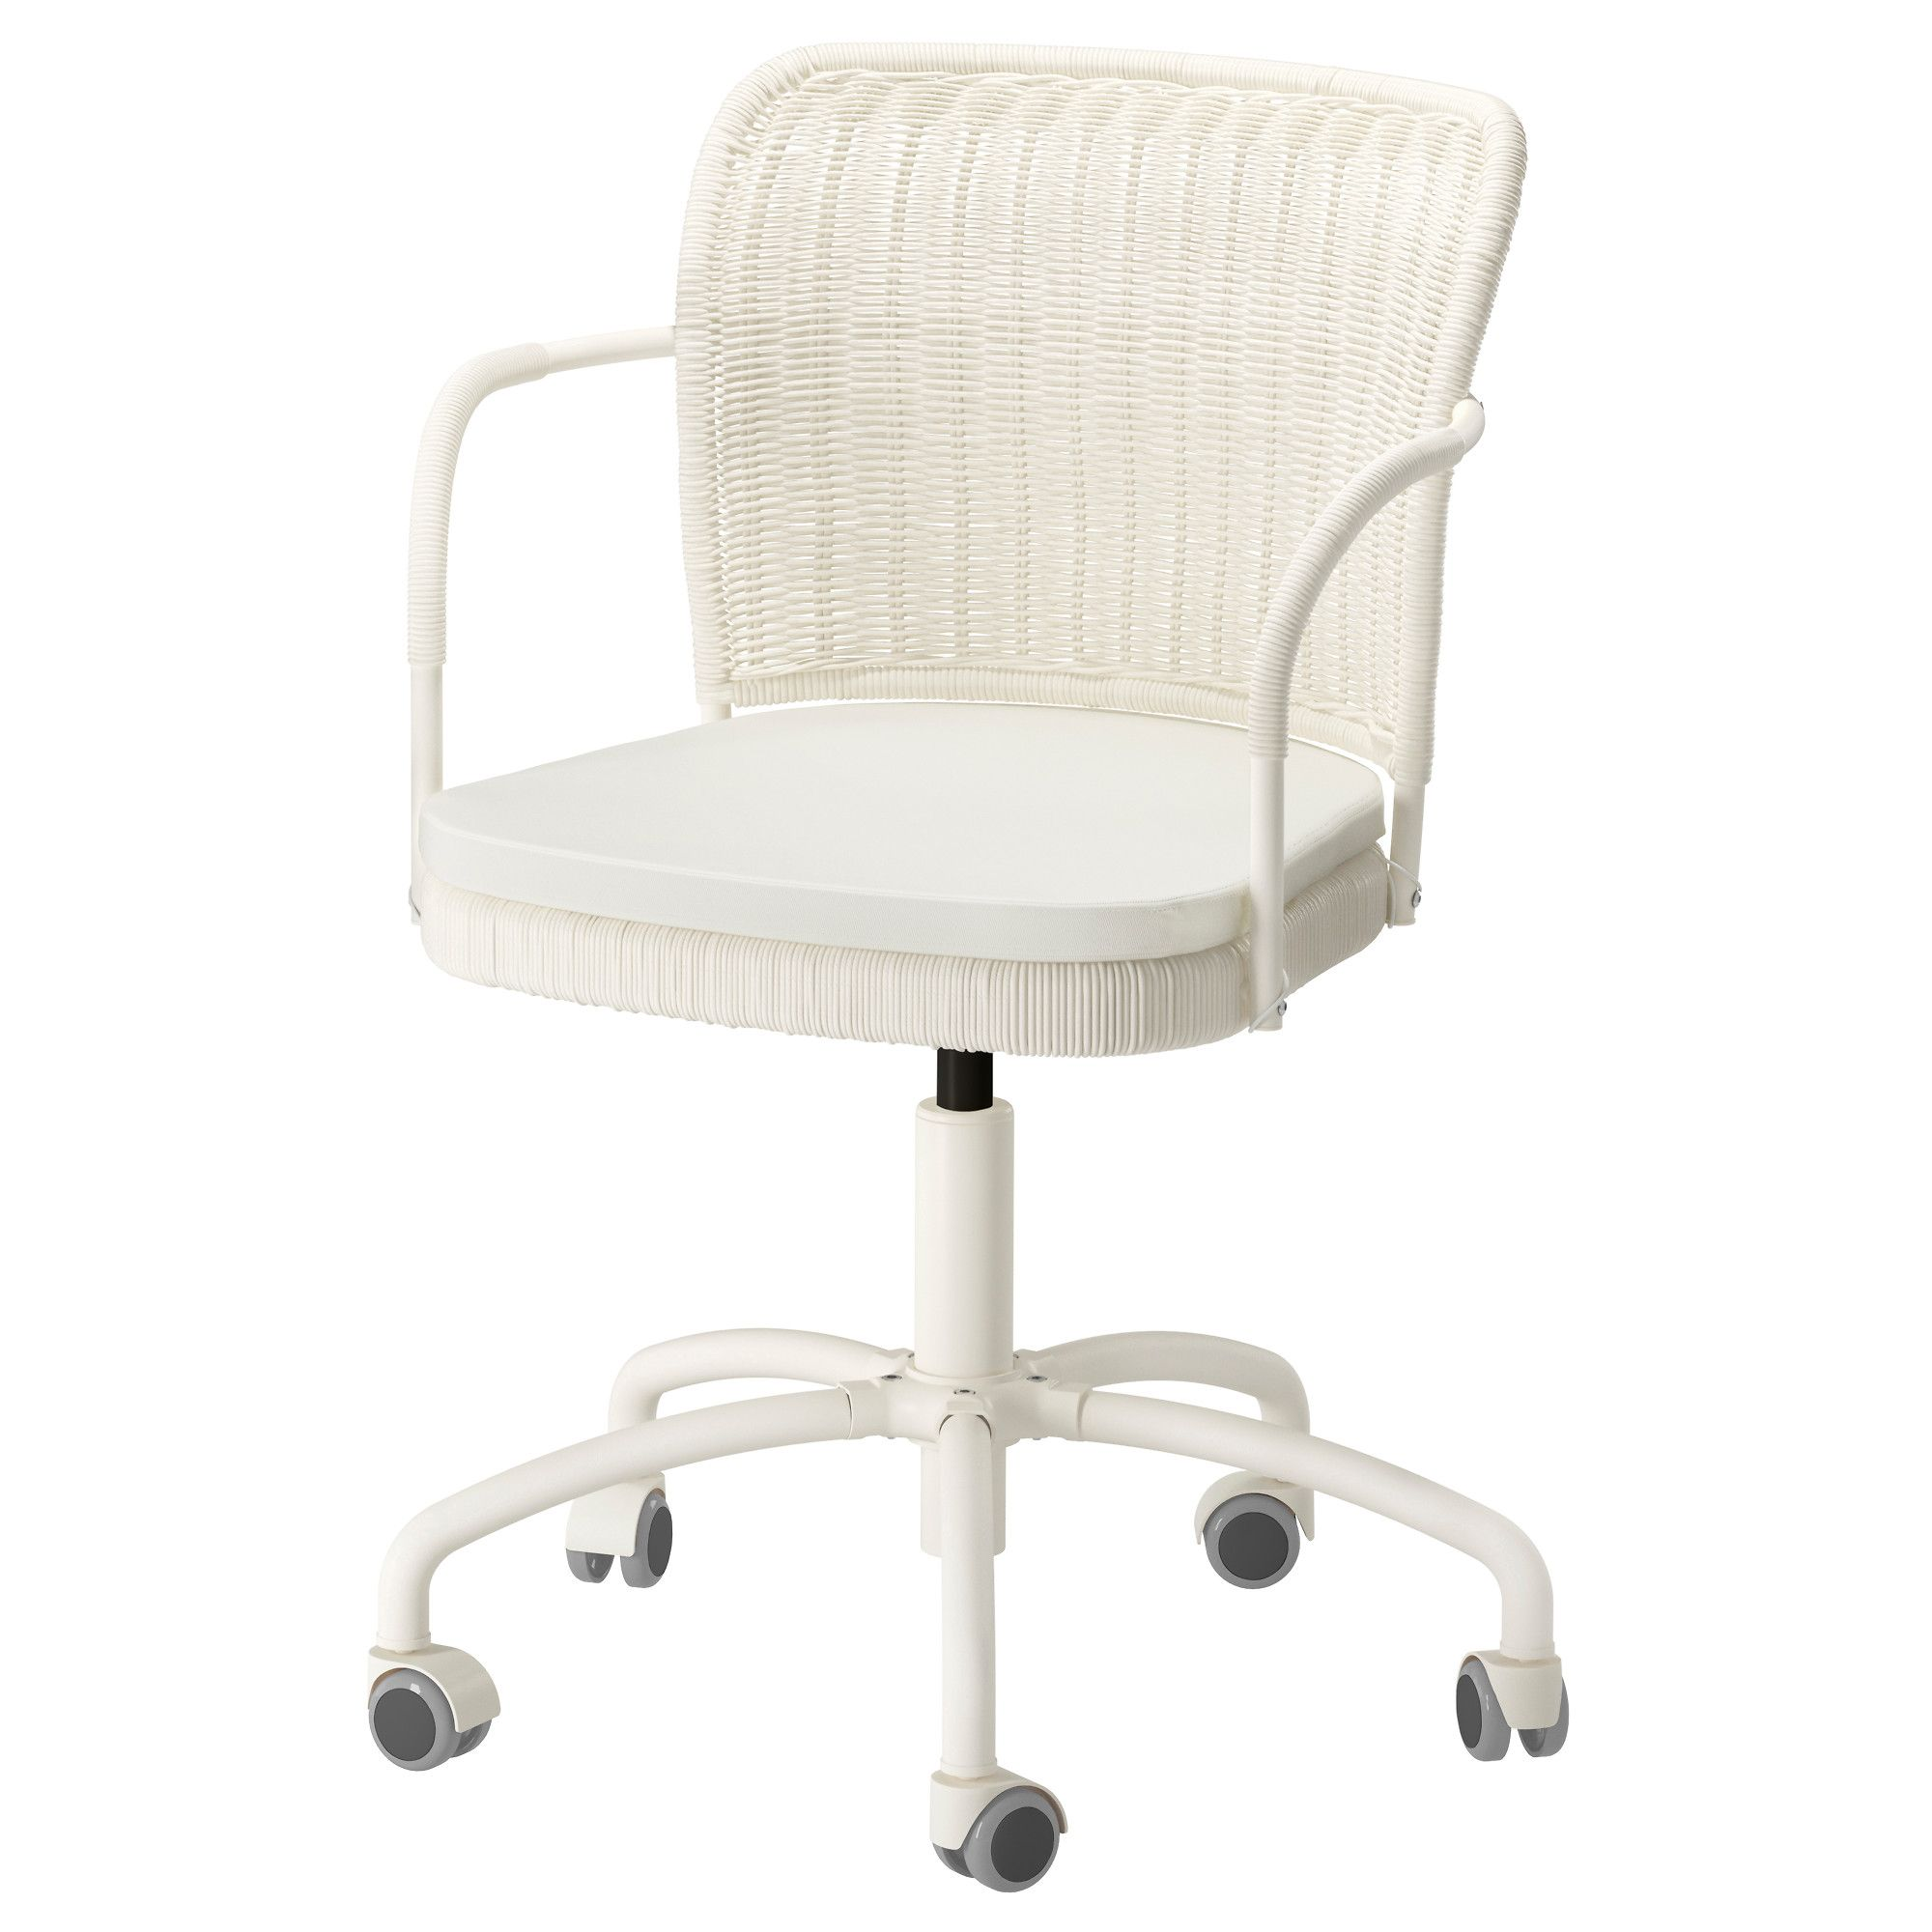 IKEA GREGOR Swivel chair Vittaryd white You sit fortably since